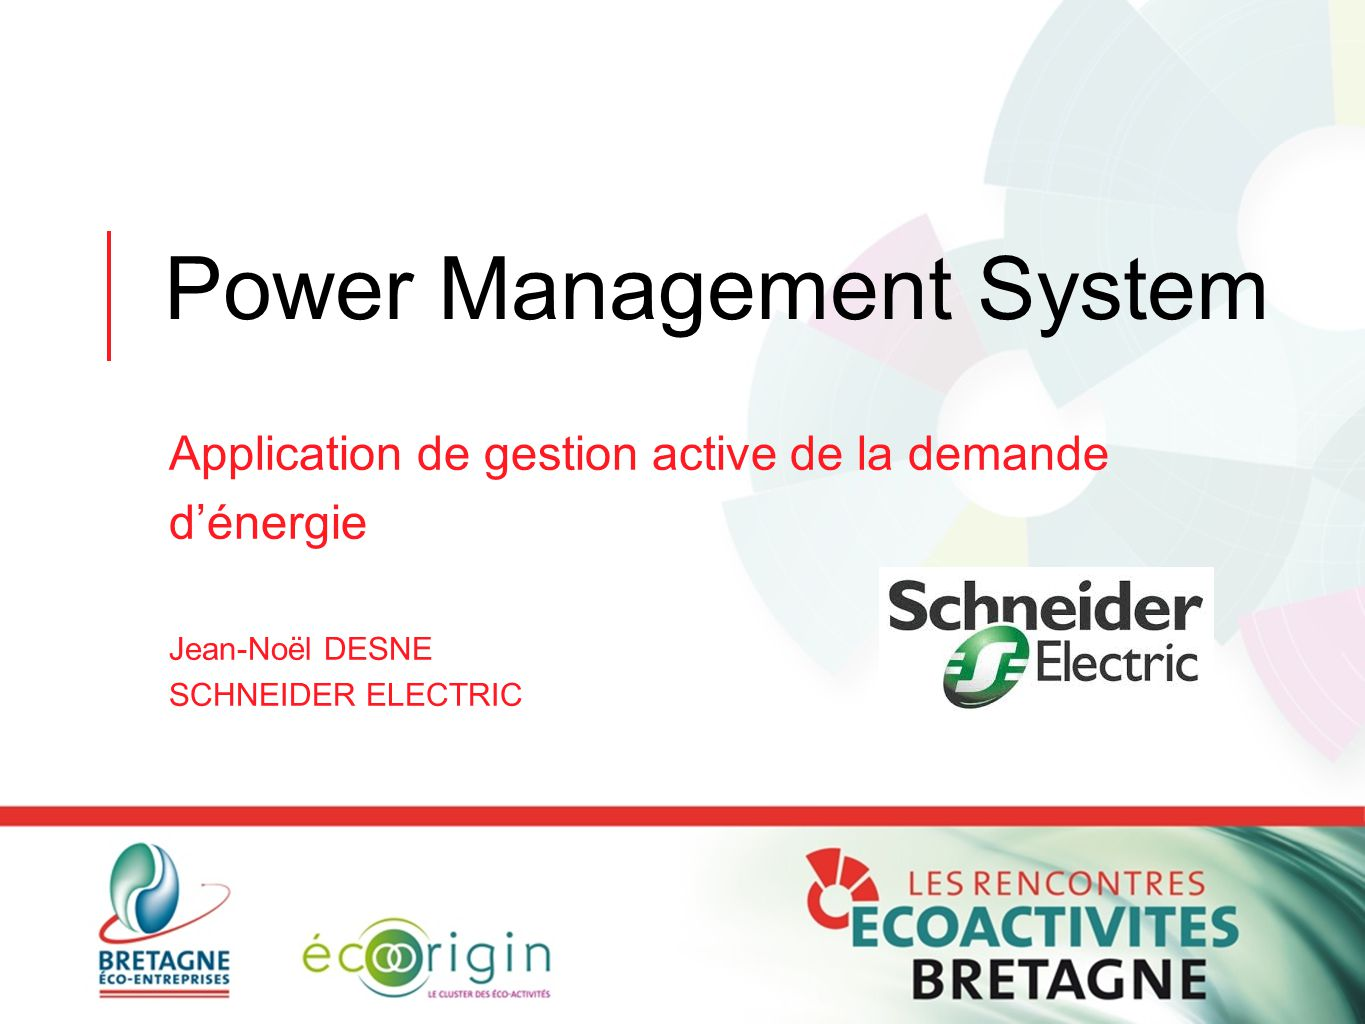 Power Management System Application de gestion active de la demande d'énergie Jean-Noël DESNE SCHNEIDER ELECTRIC